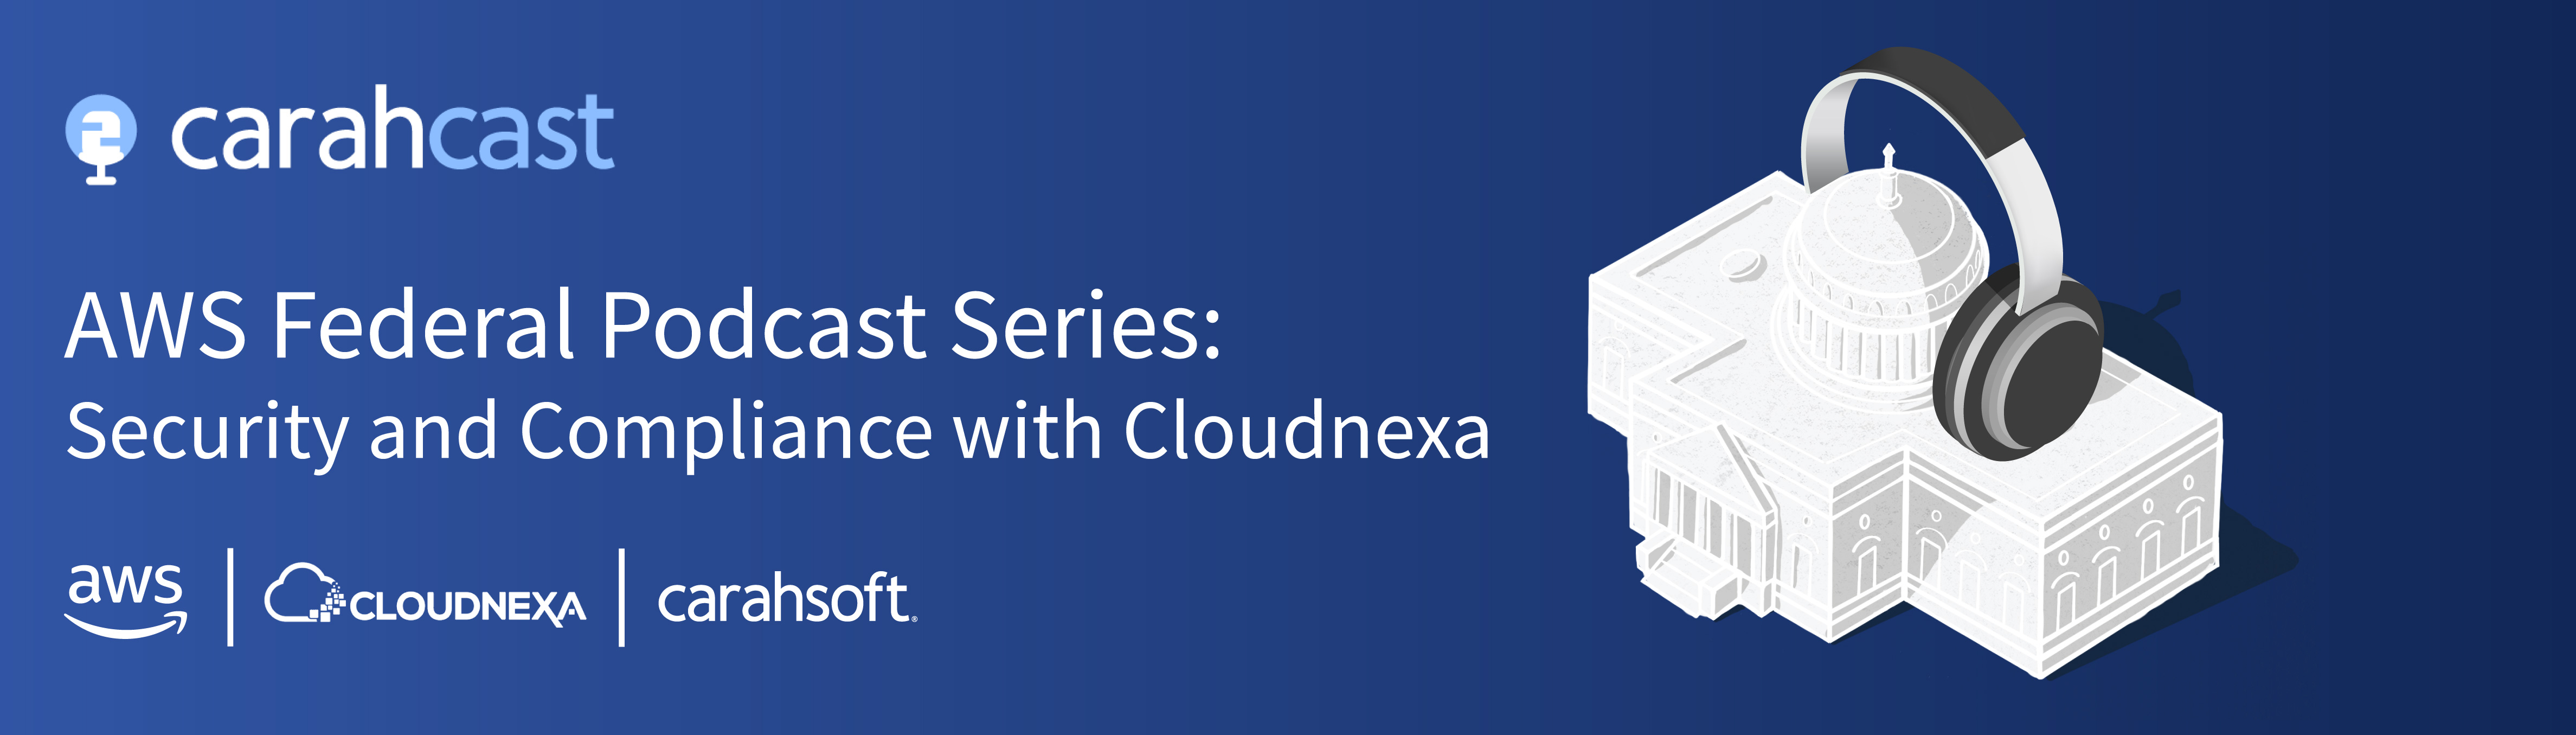 Security and Compliance with Cloudnexa banner